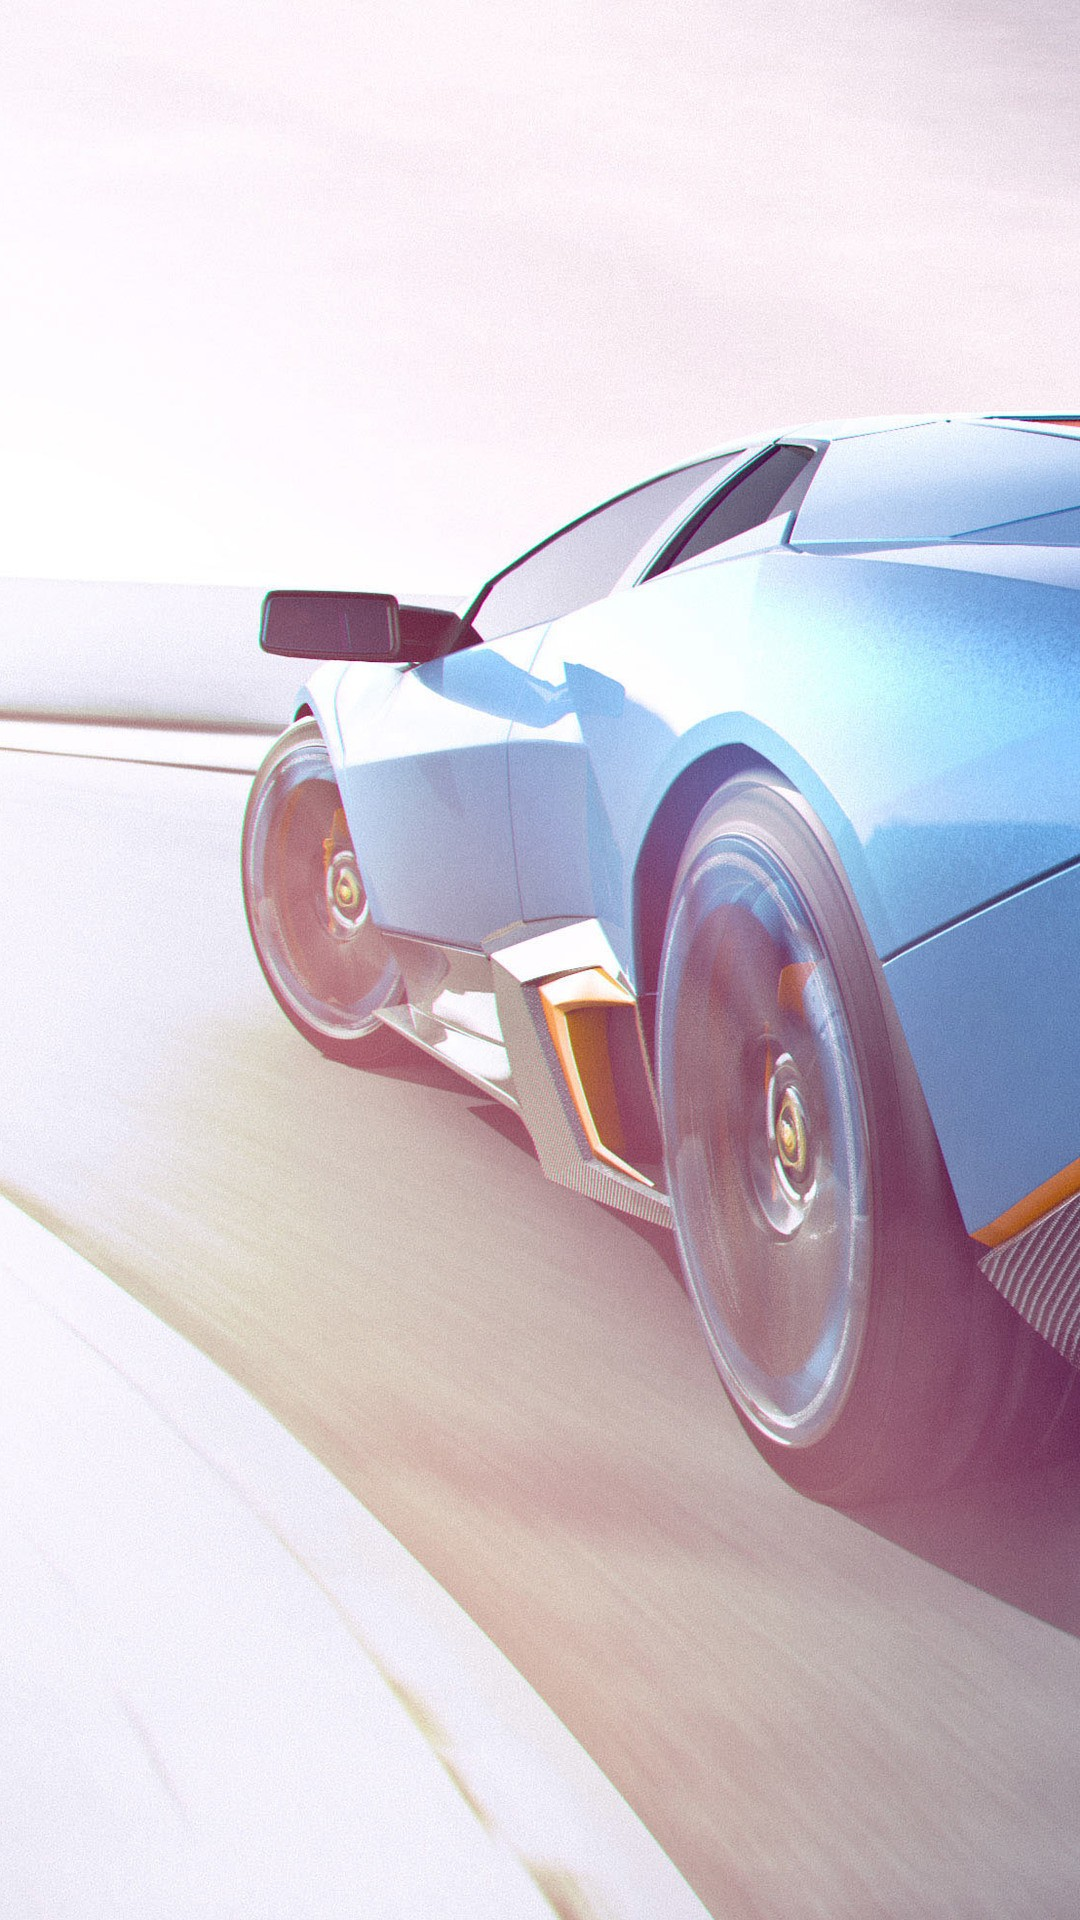 Lamborghini Cgi Artwork Qhd Wallpaper Car Wallpaper For